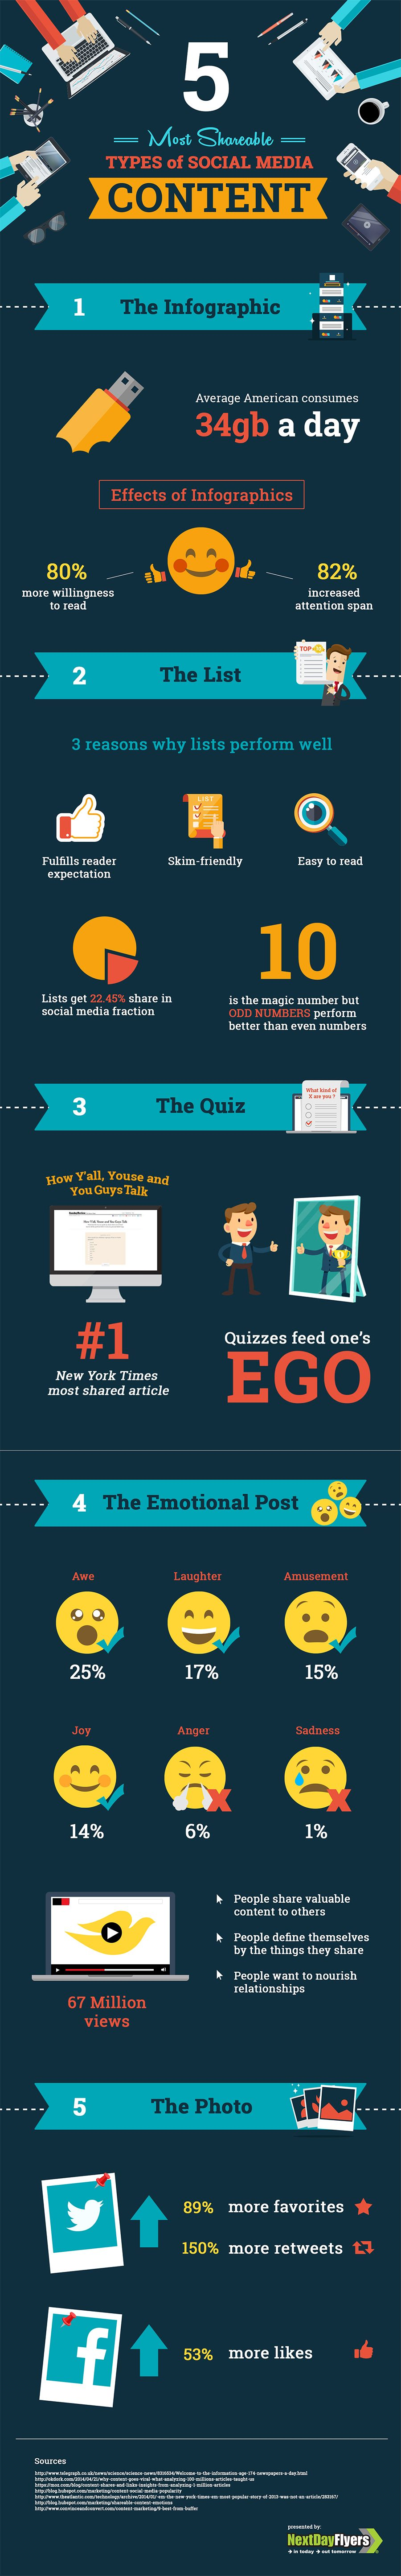 Top 5 types of social media content you should be sharing!